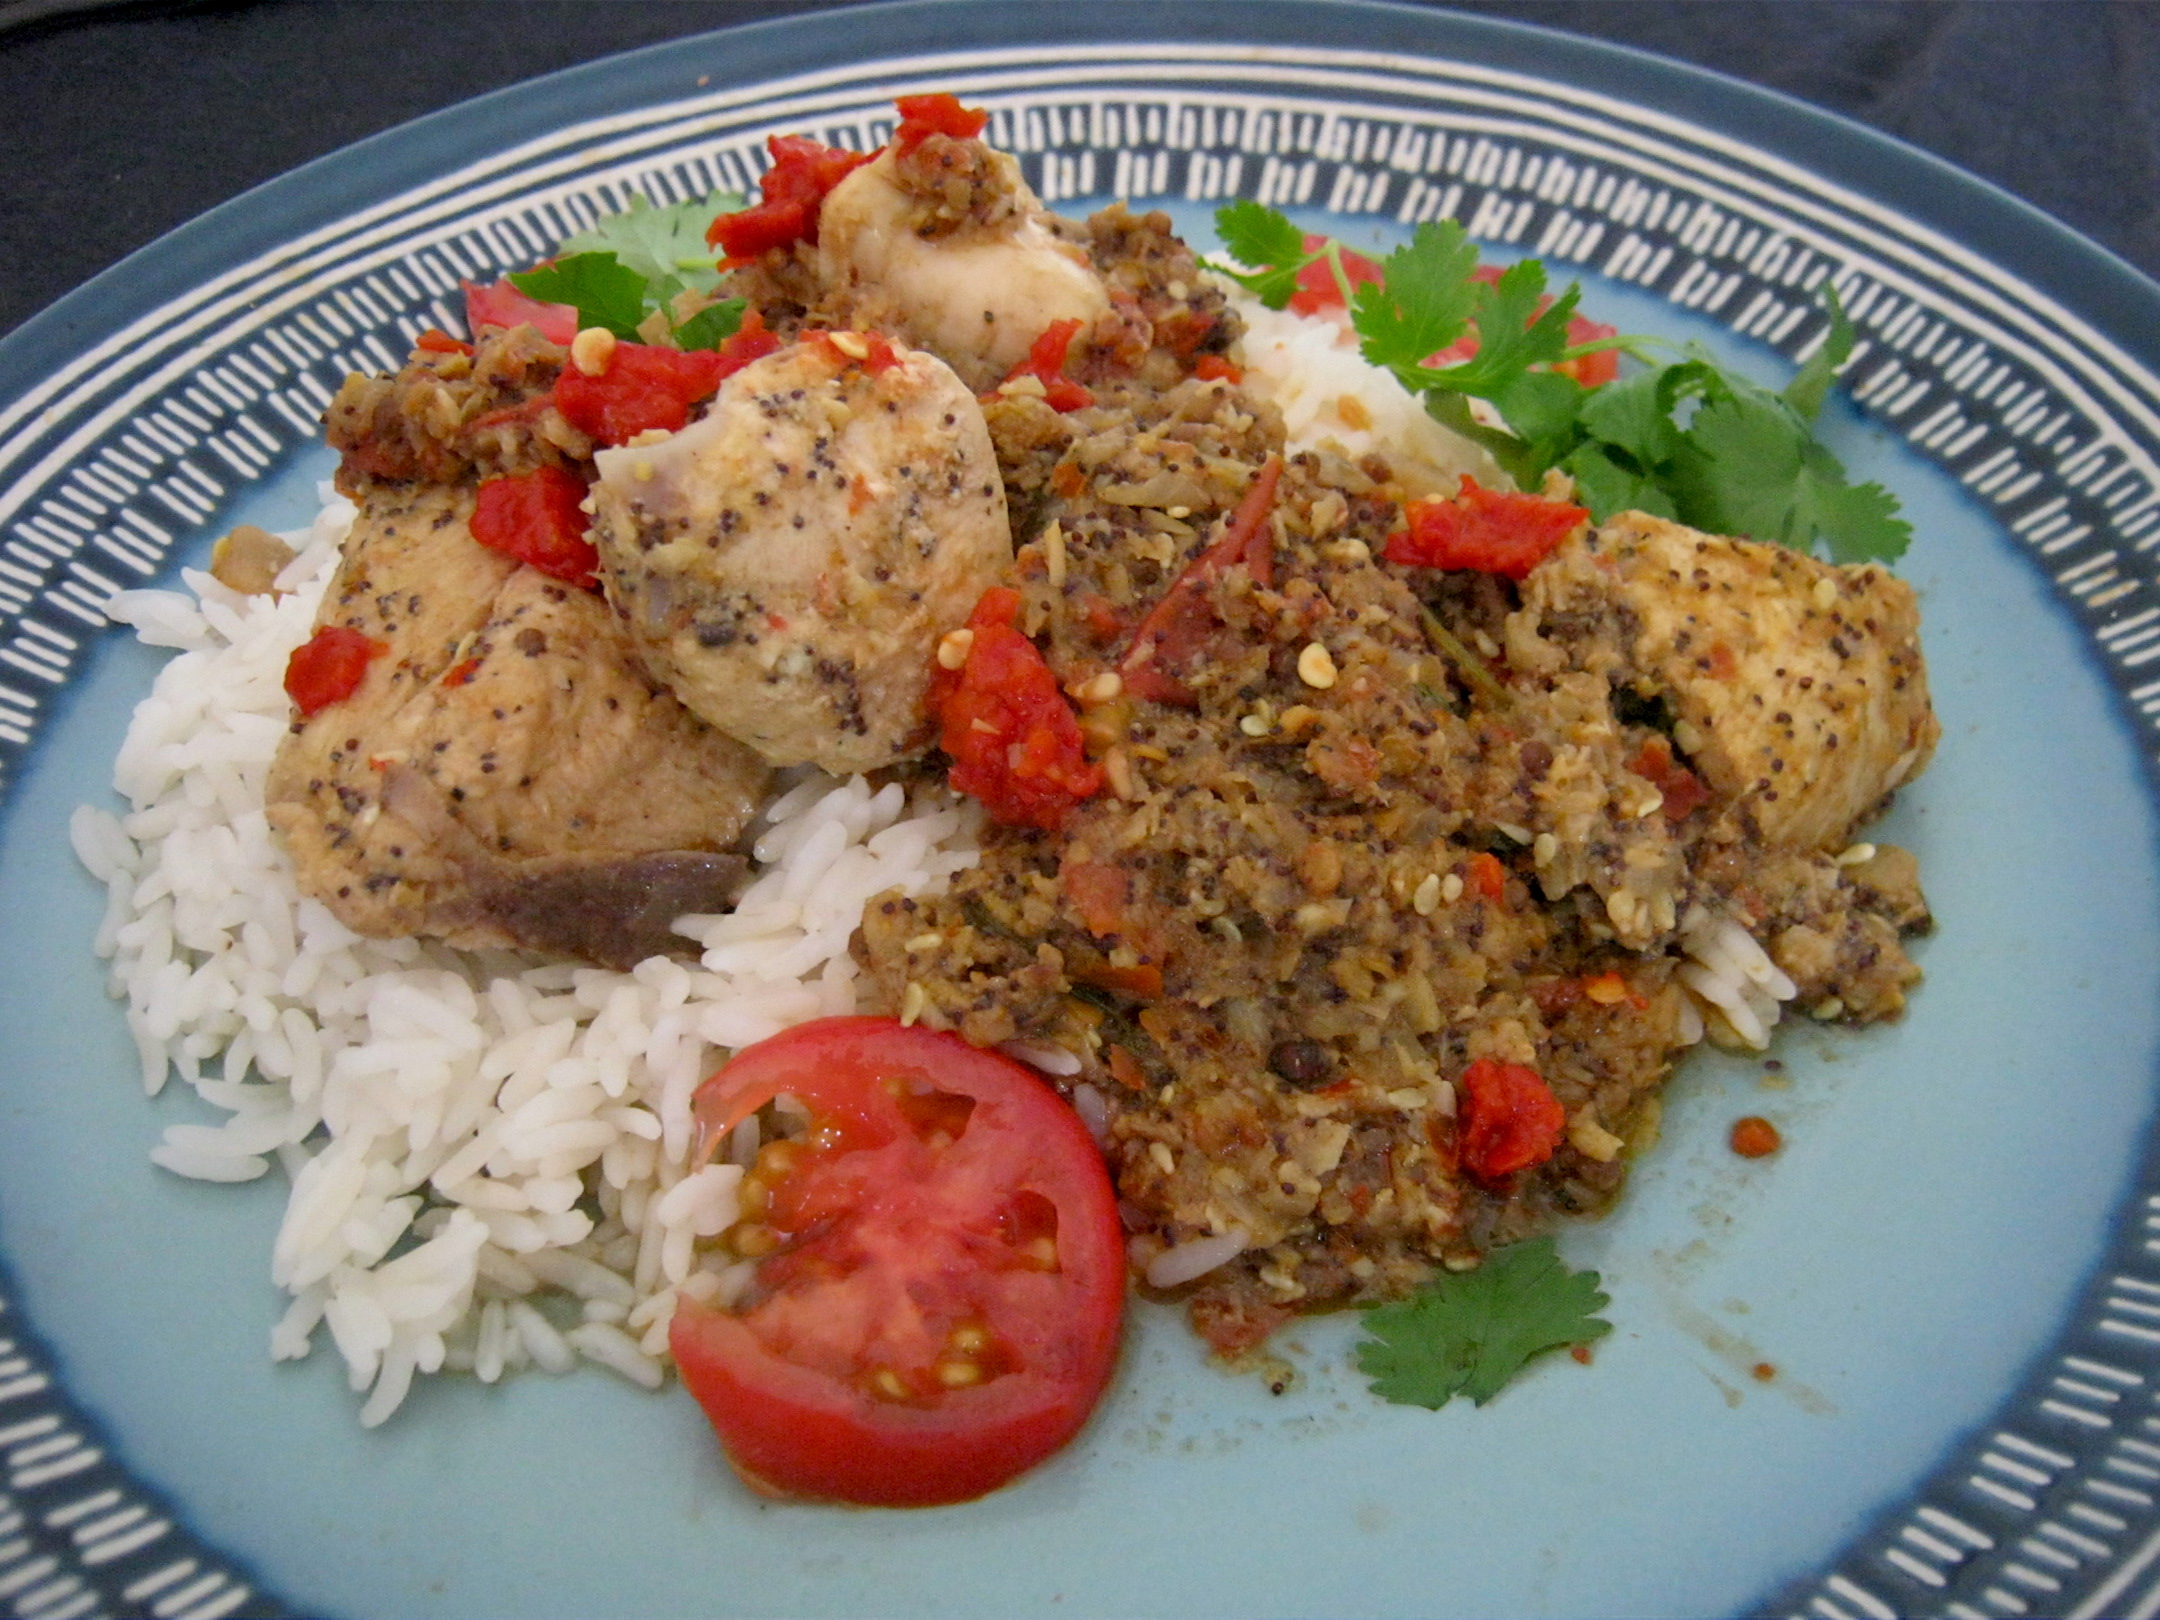 Kolhapuri chicken on a bed of steamed rice, garnished with tomato and fresh coriander leaves